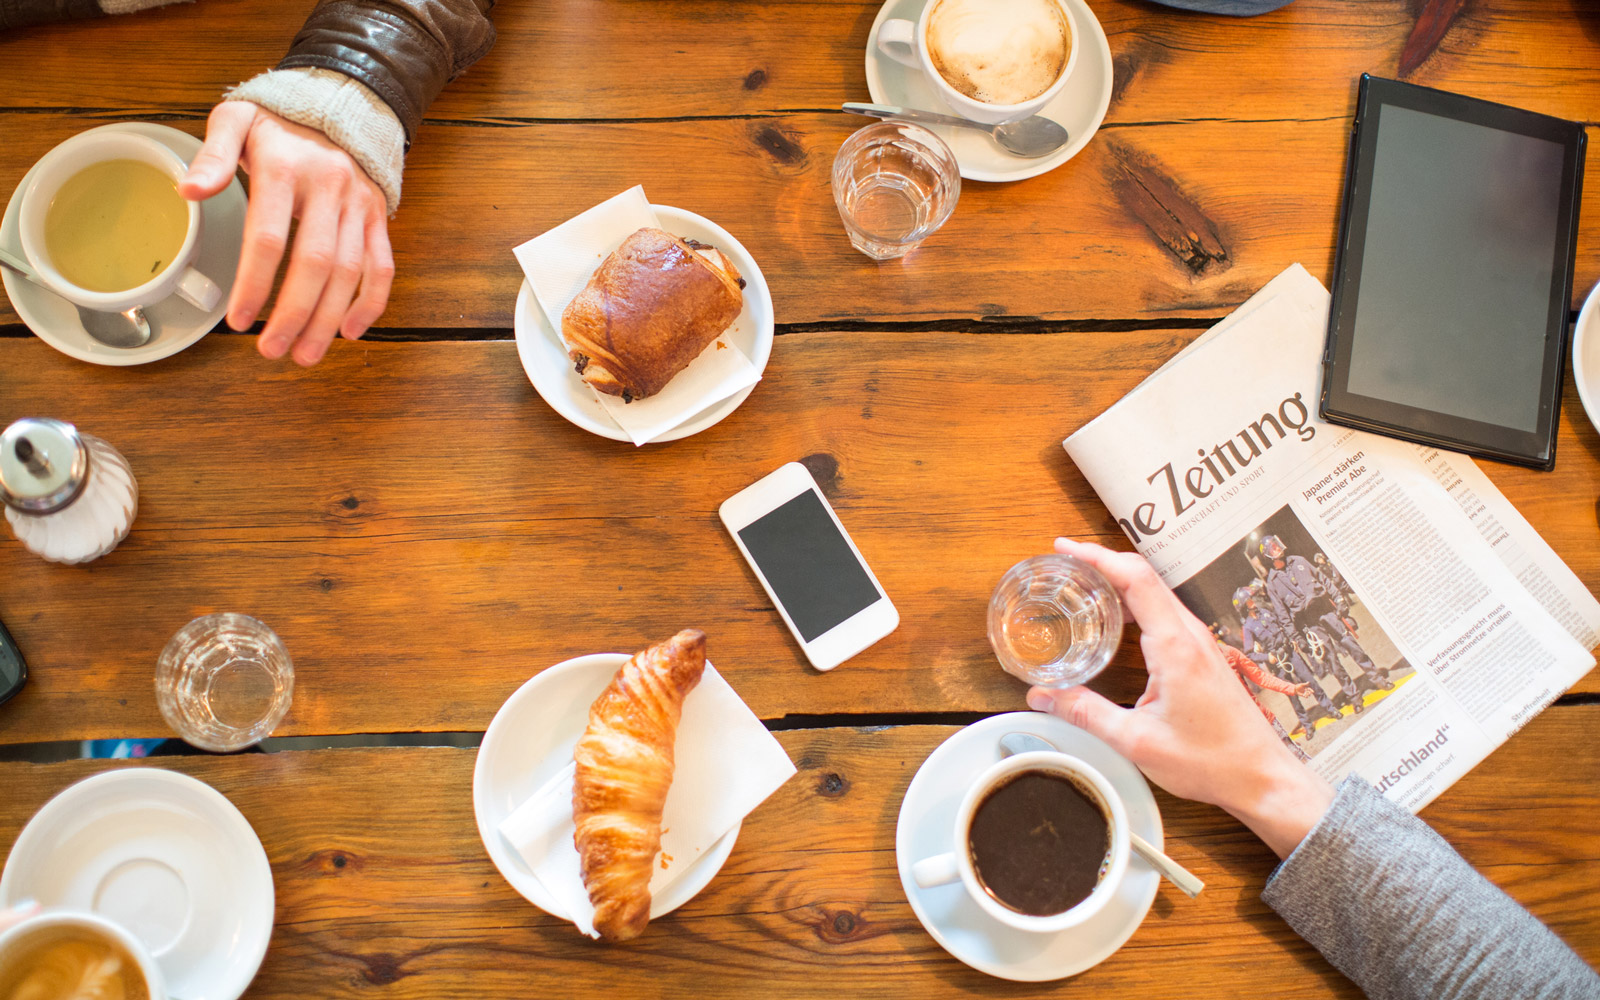 Cropped image of friends having coffee and snacks at table